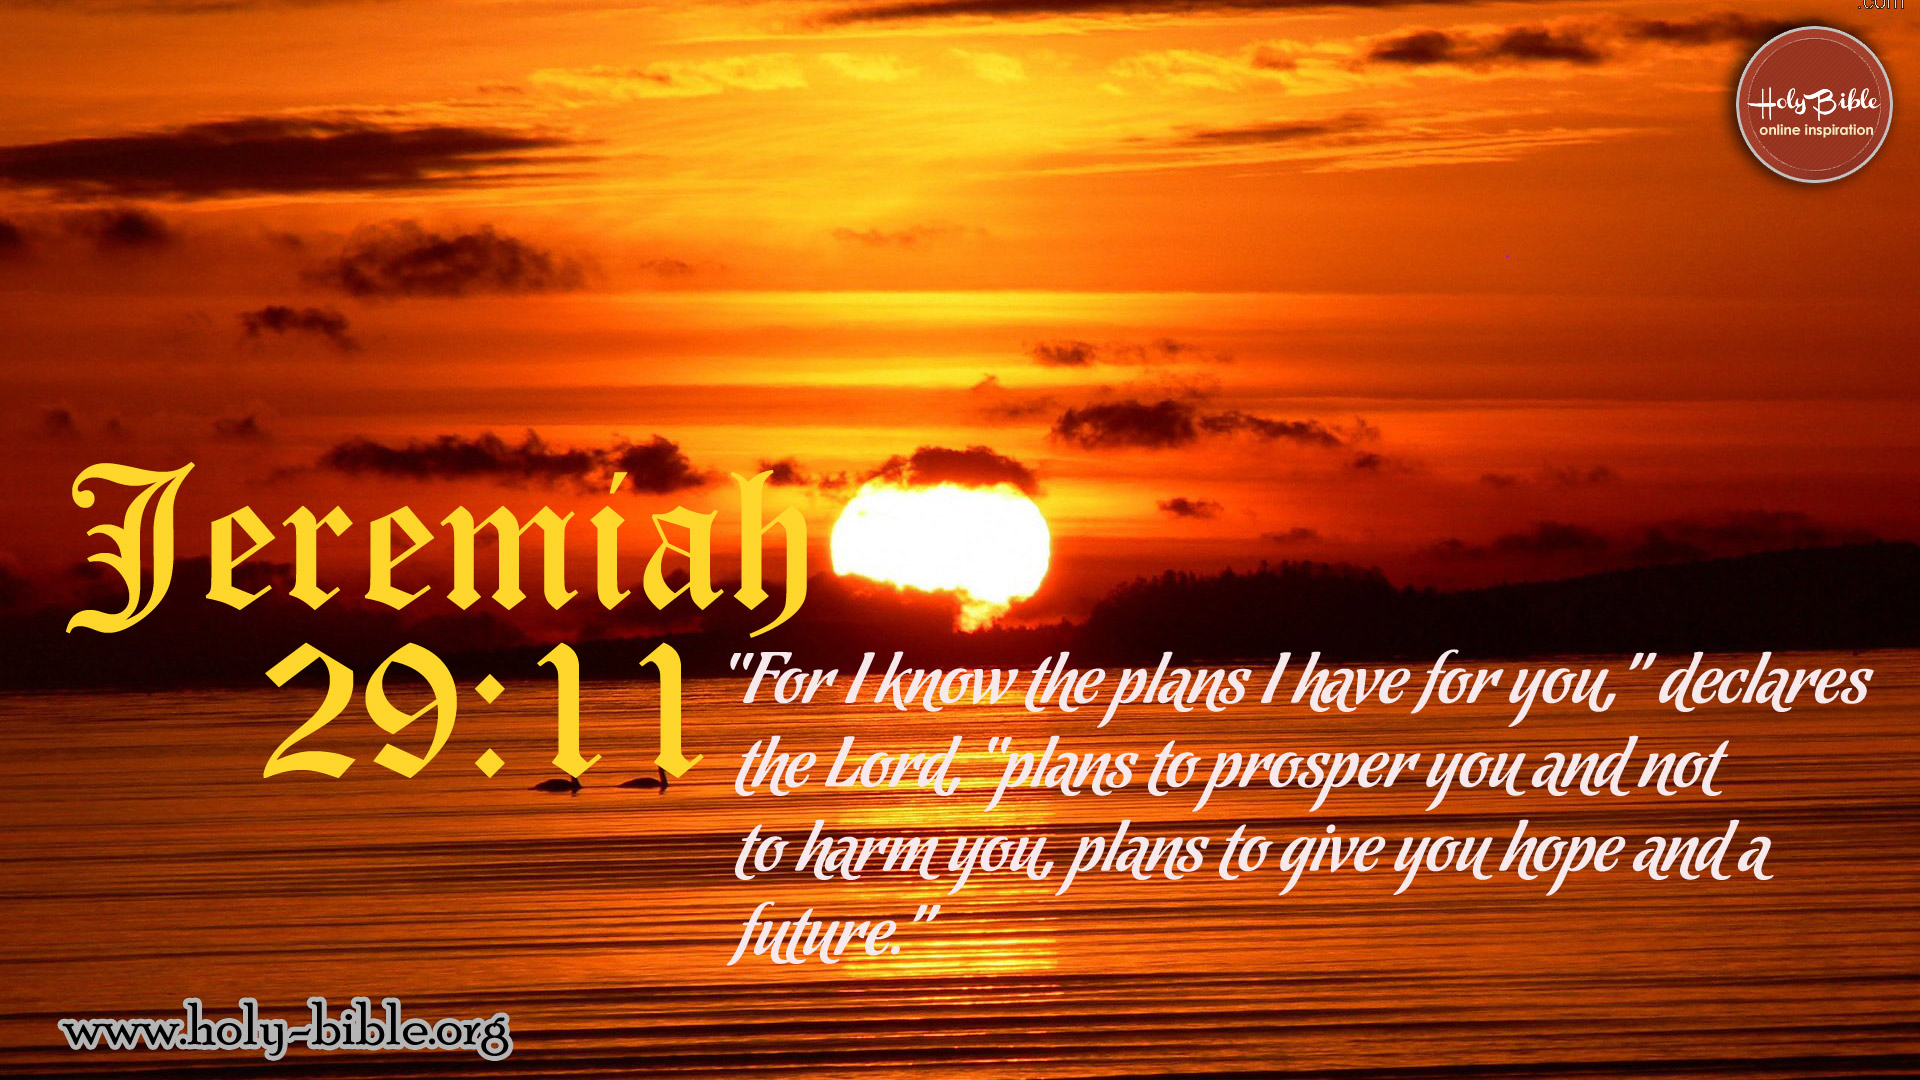 Bible Verse of the day - Jeremiah 29:11